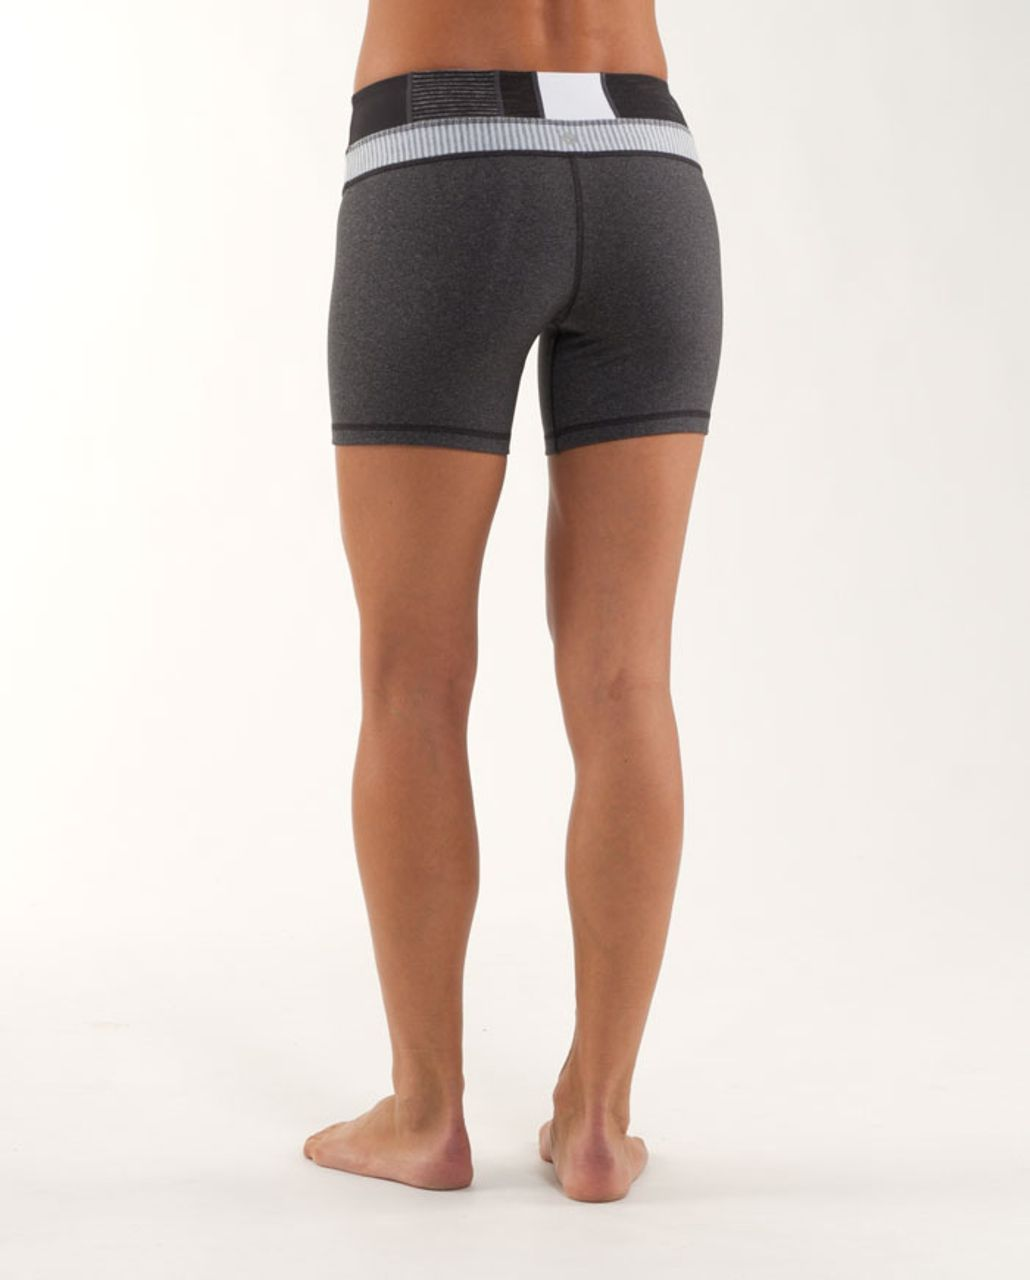 Lululemon Groove Short - Heathered Deep Coal /  Quilting Winter 4 /  White Heathered Blurred Grey Mini Check